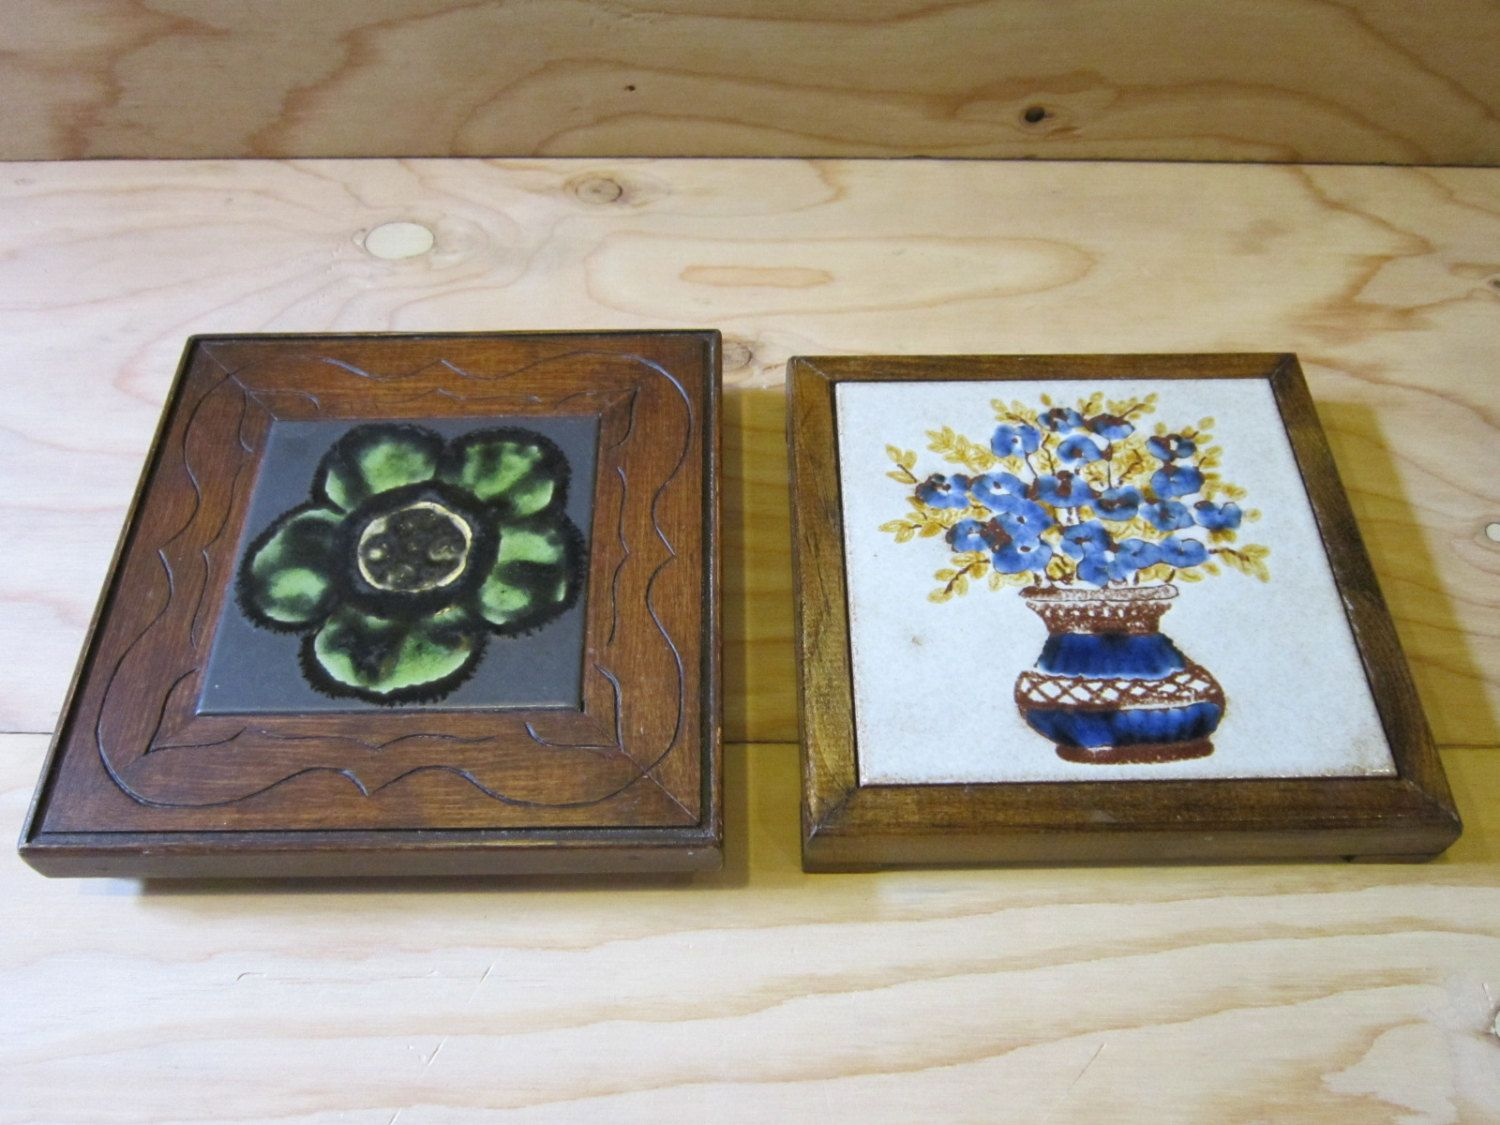 Two lovely art ceramic tile and wood pot holder trivets italian two lovely art ceramic tile and wood pot holder trivets italian and spanish ceramic decorative dailygadgetfo Image collections